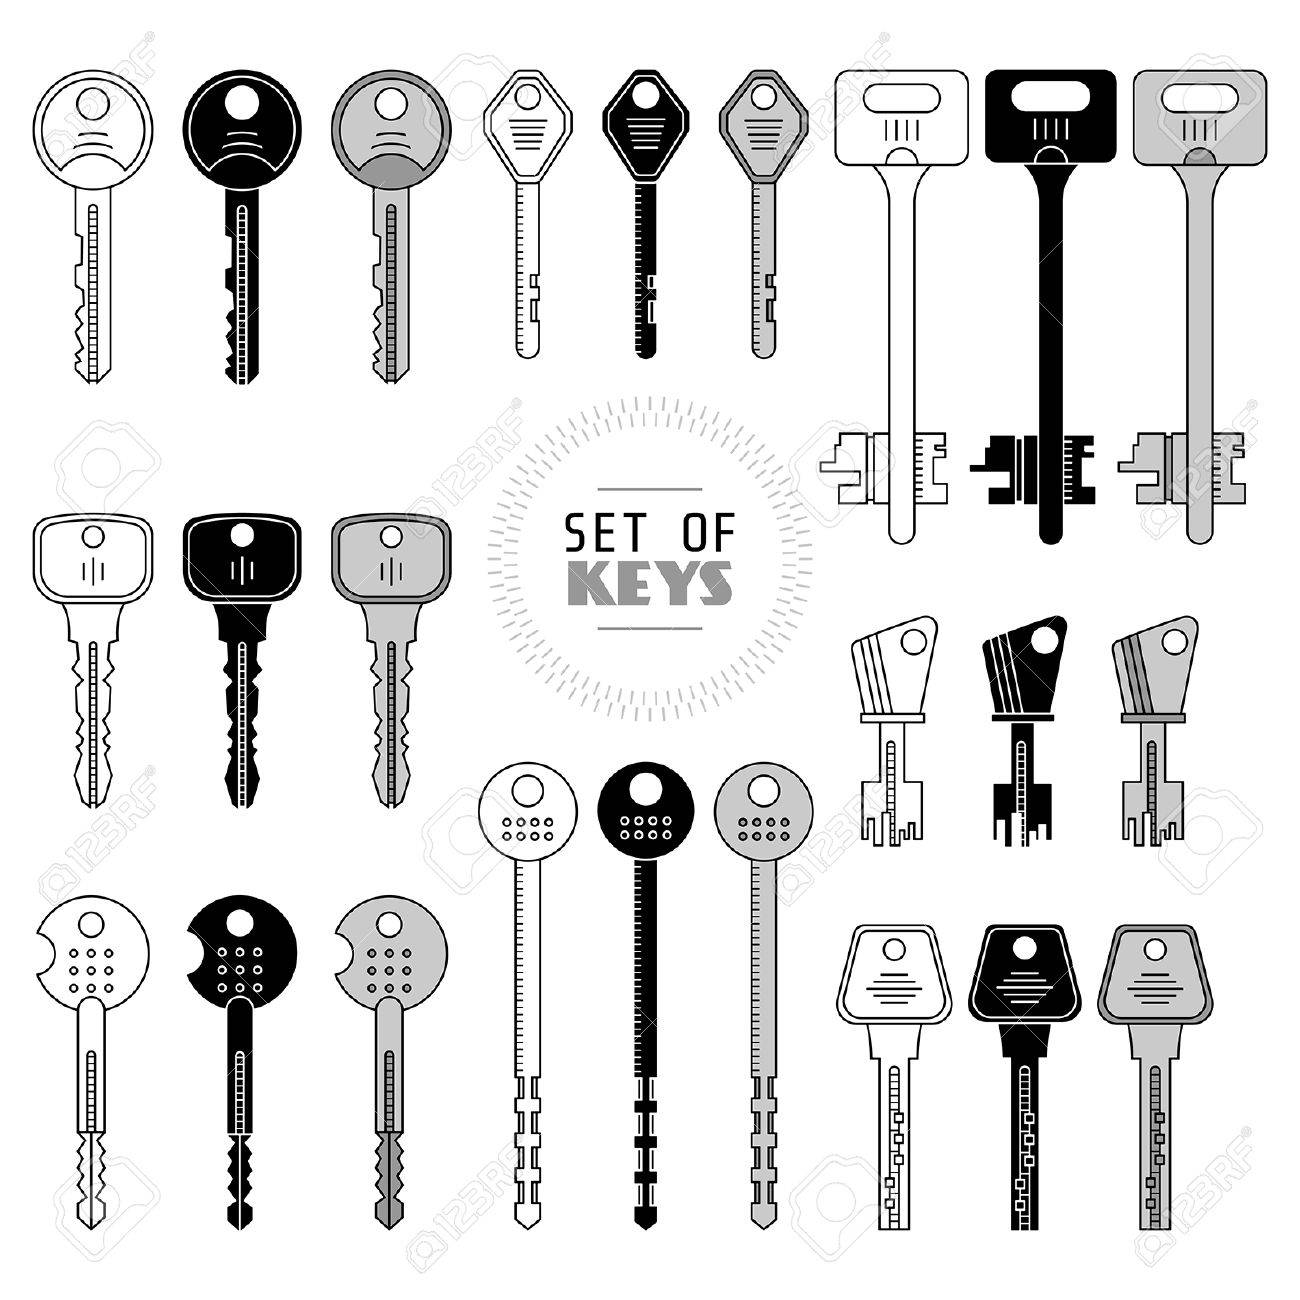 types of keys